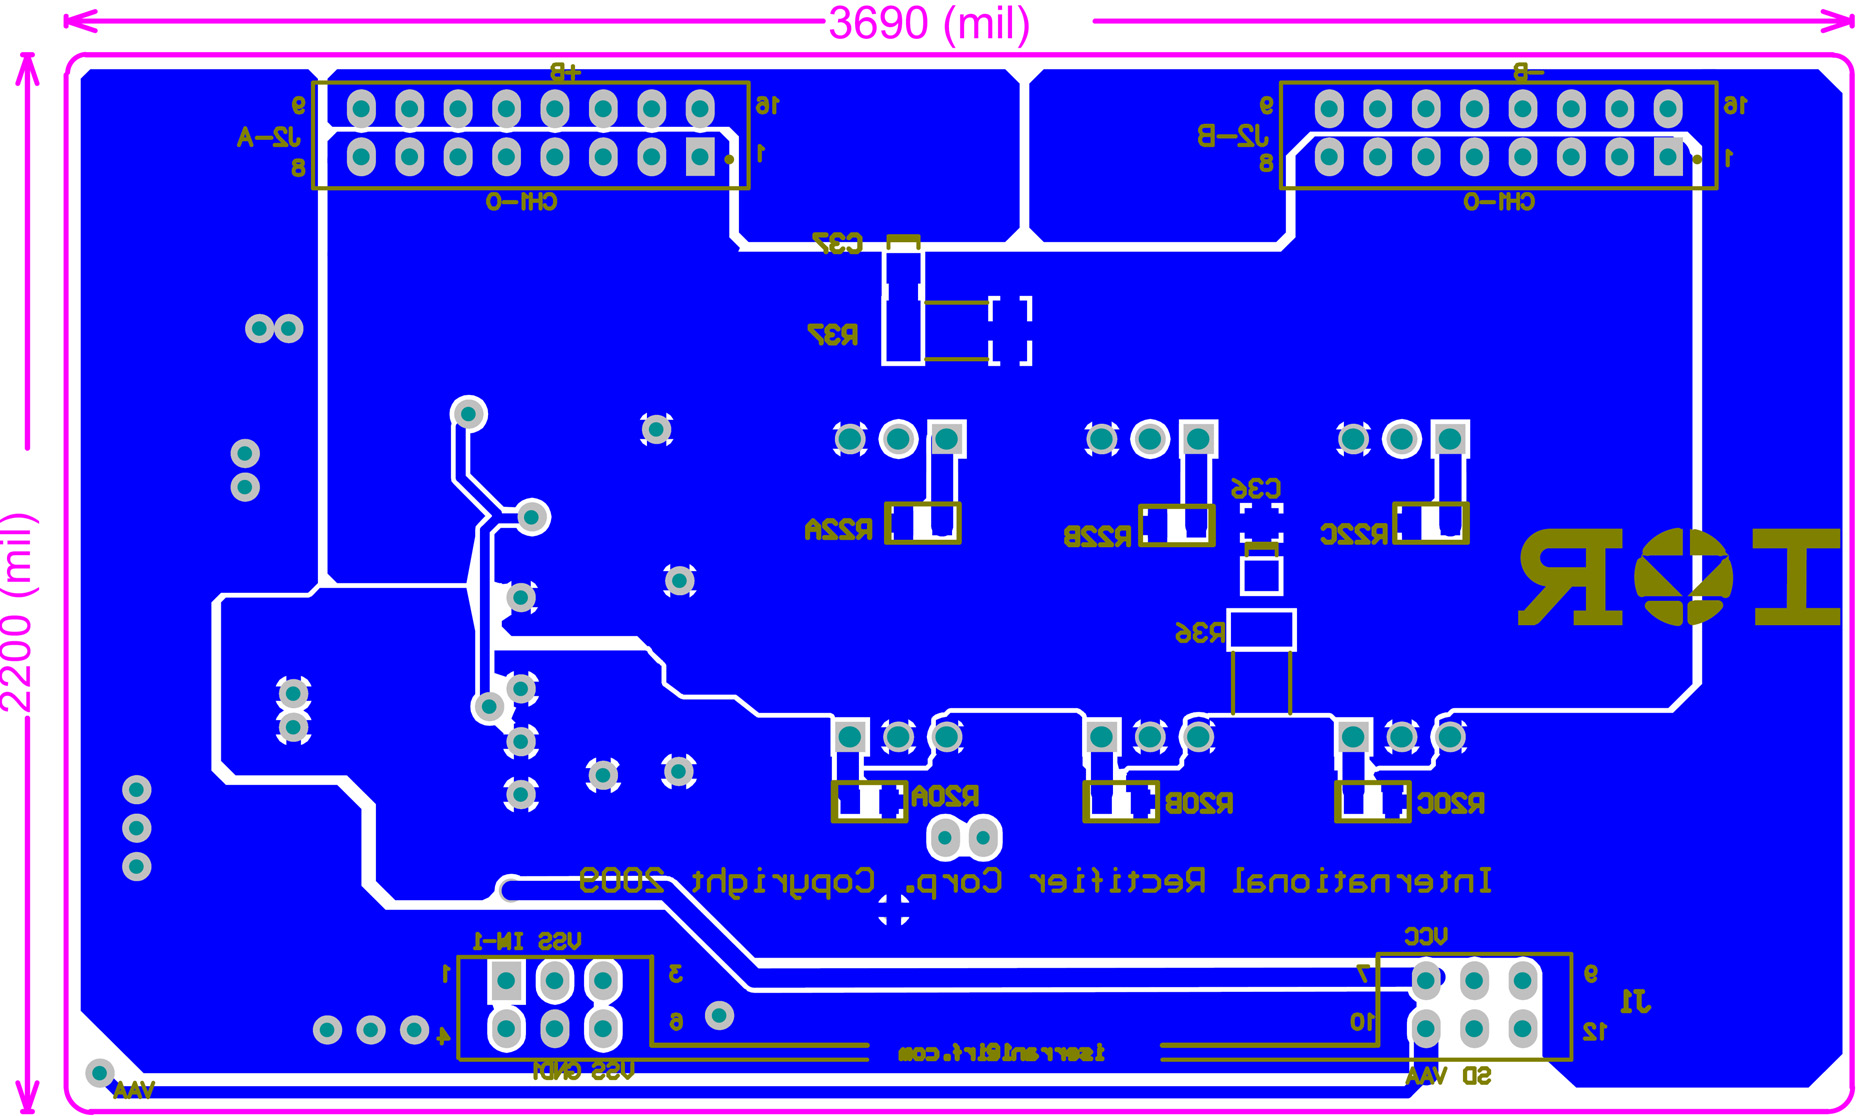 Iraudamp Kw 2 Single Channel Class D Audio Power Amplifier Using 12v 8211 32 V 5a Supply By Lm338 Figure 27 Iraudamp9 Daughter Board Pcb Top Overlay View 28